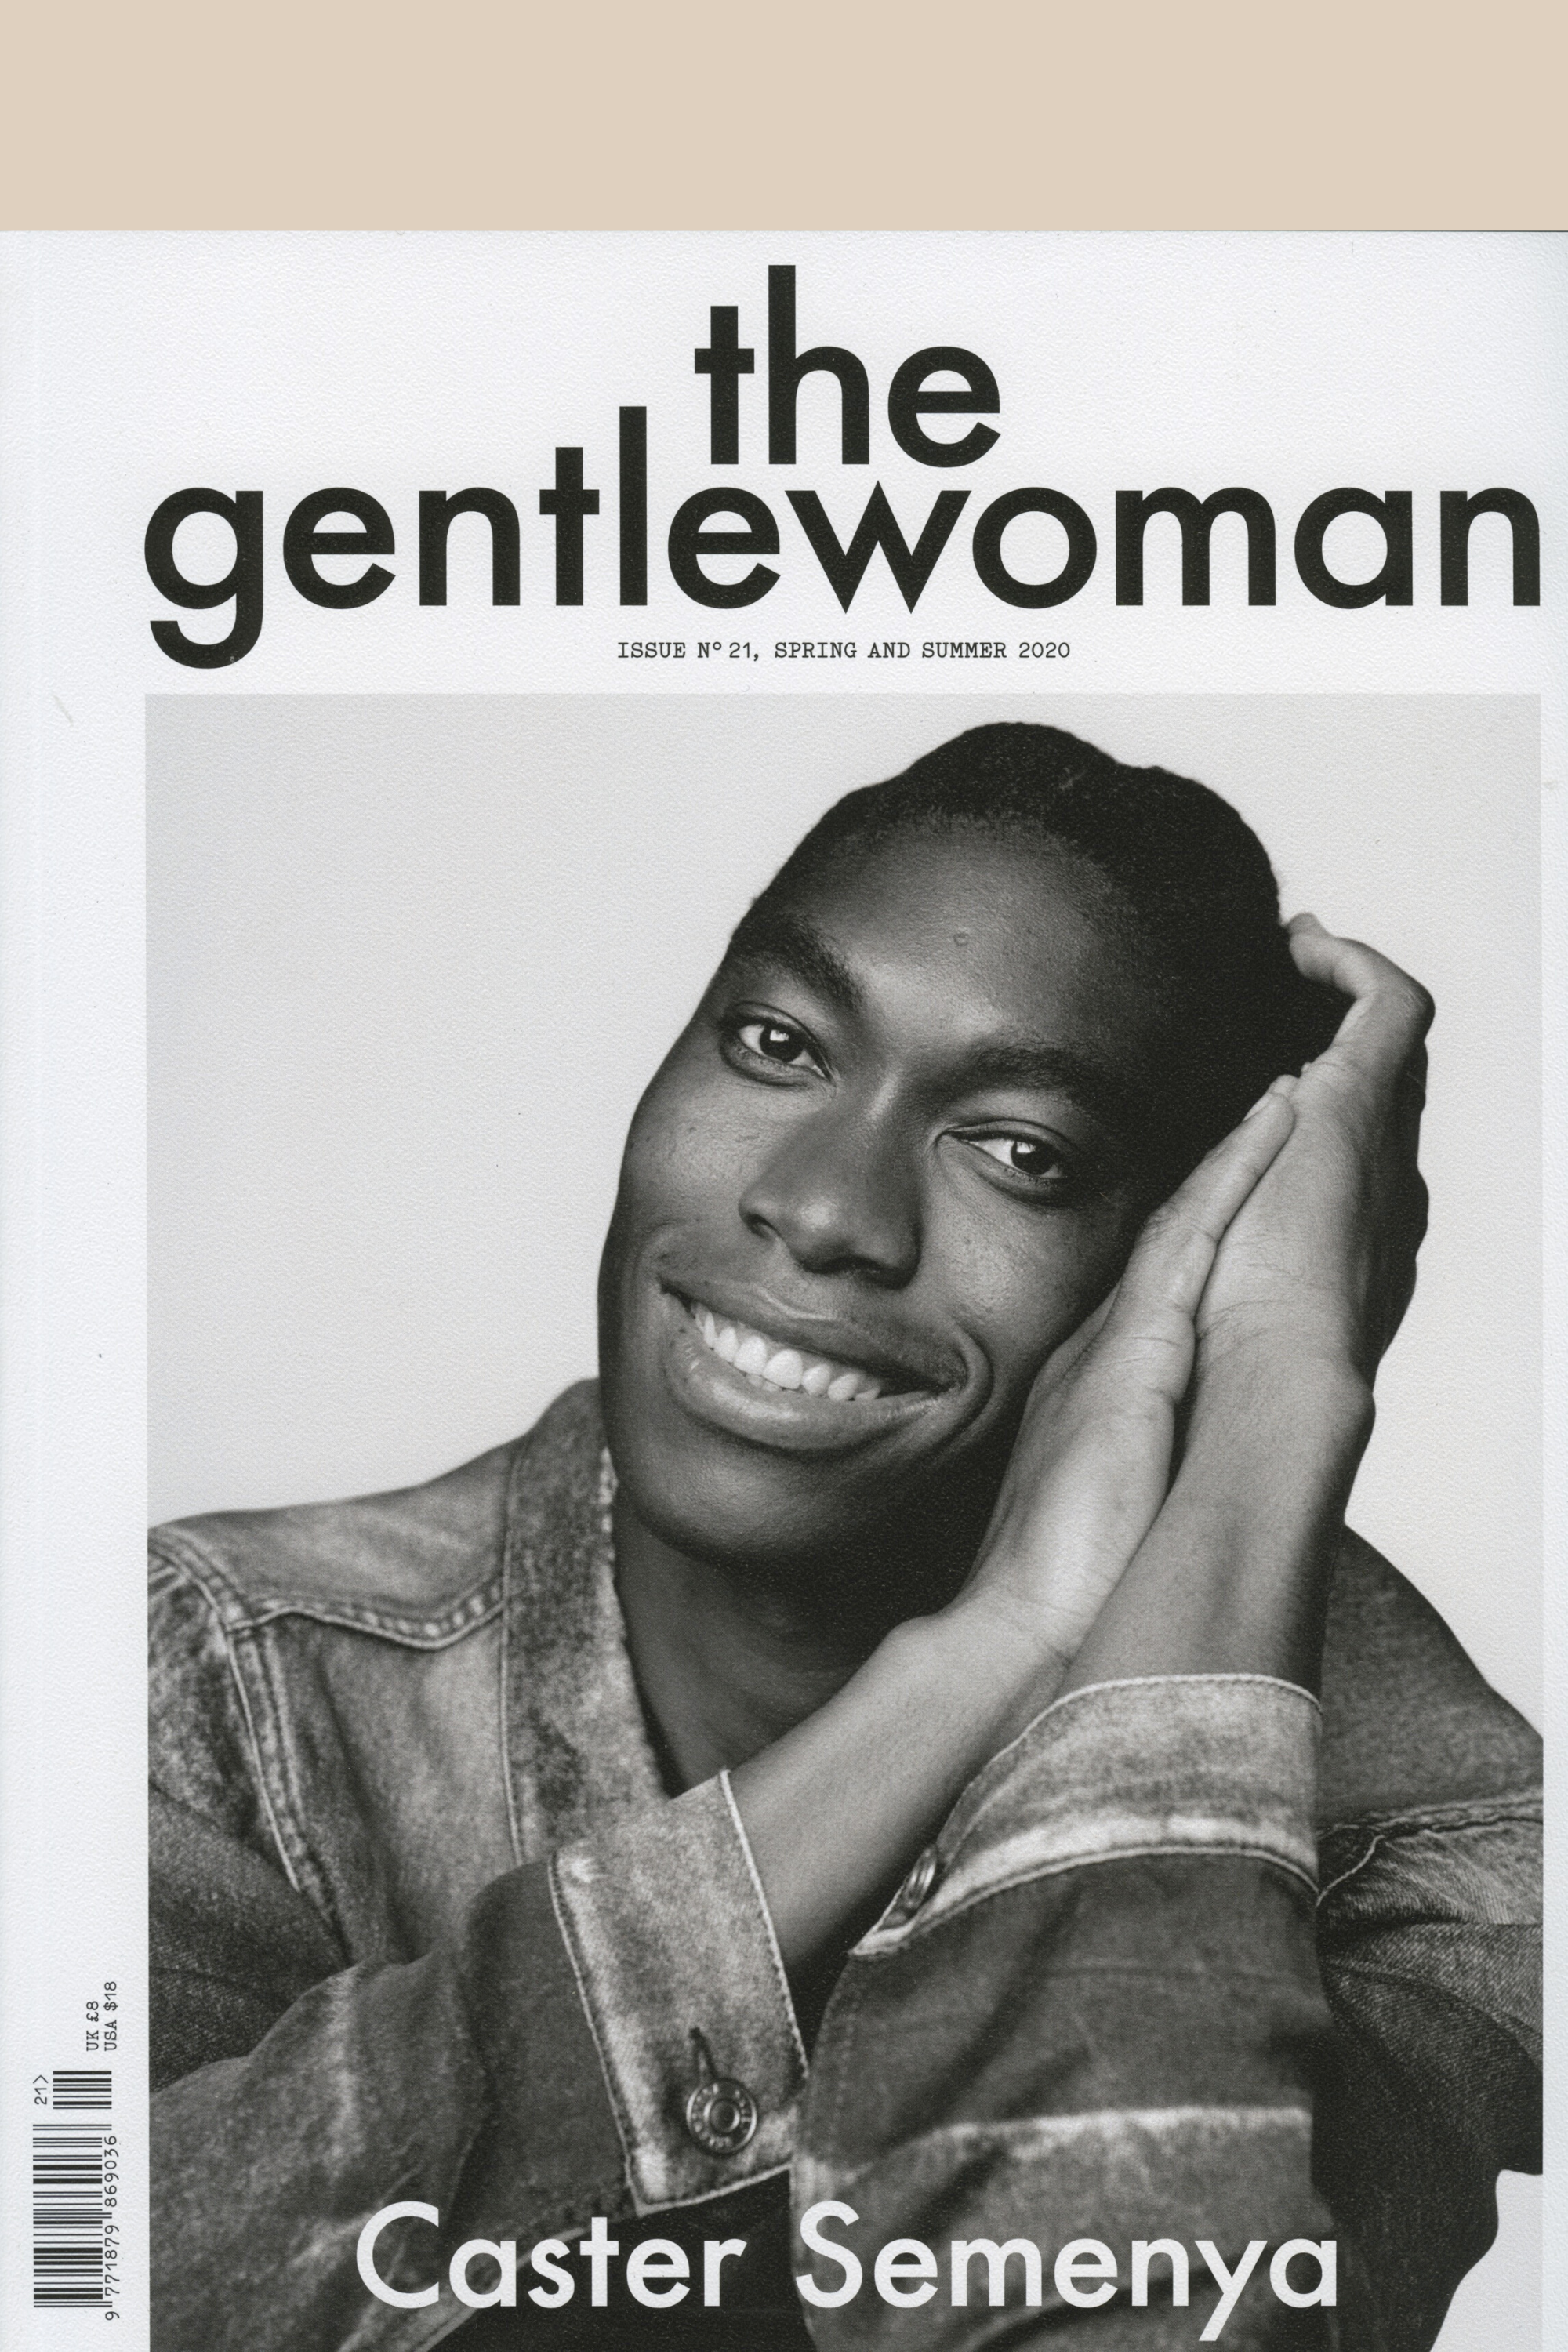 The Gentlewoman Issue 21